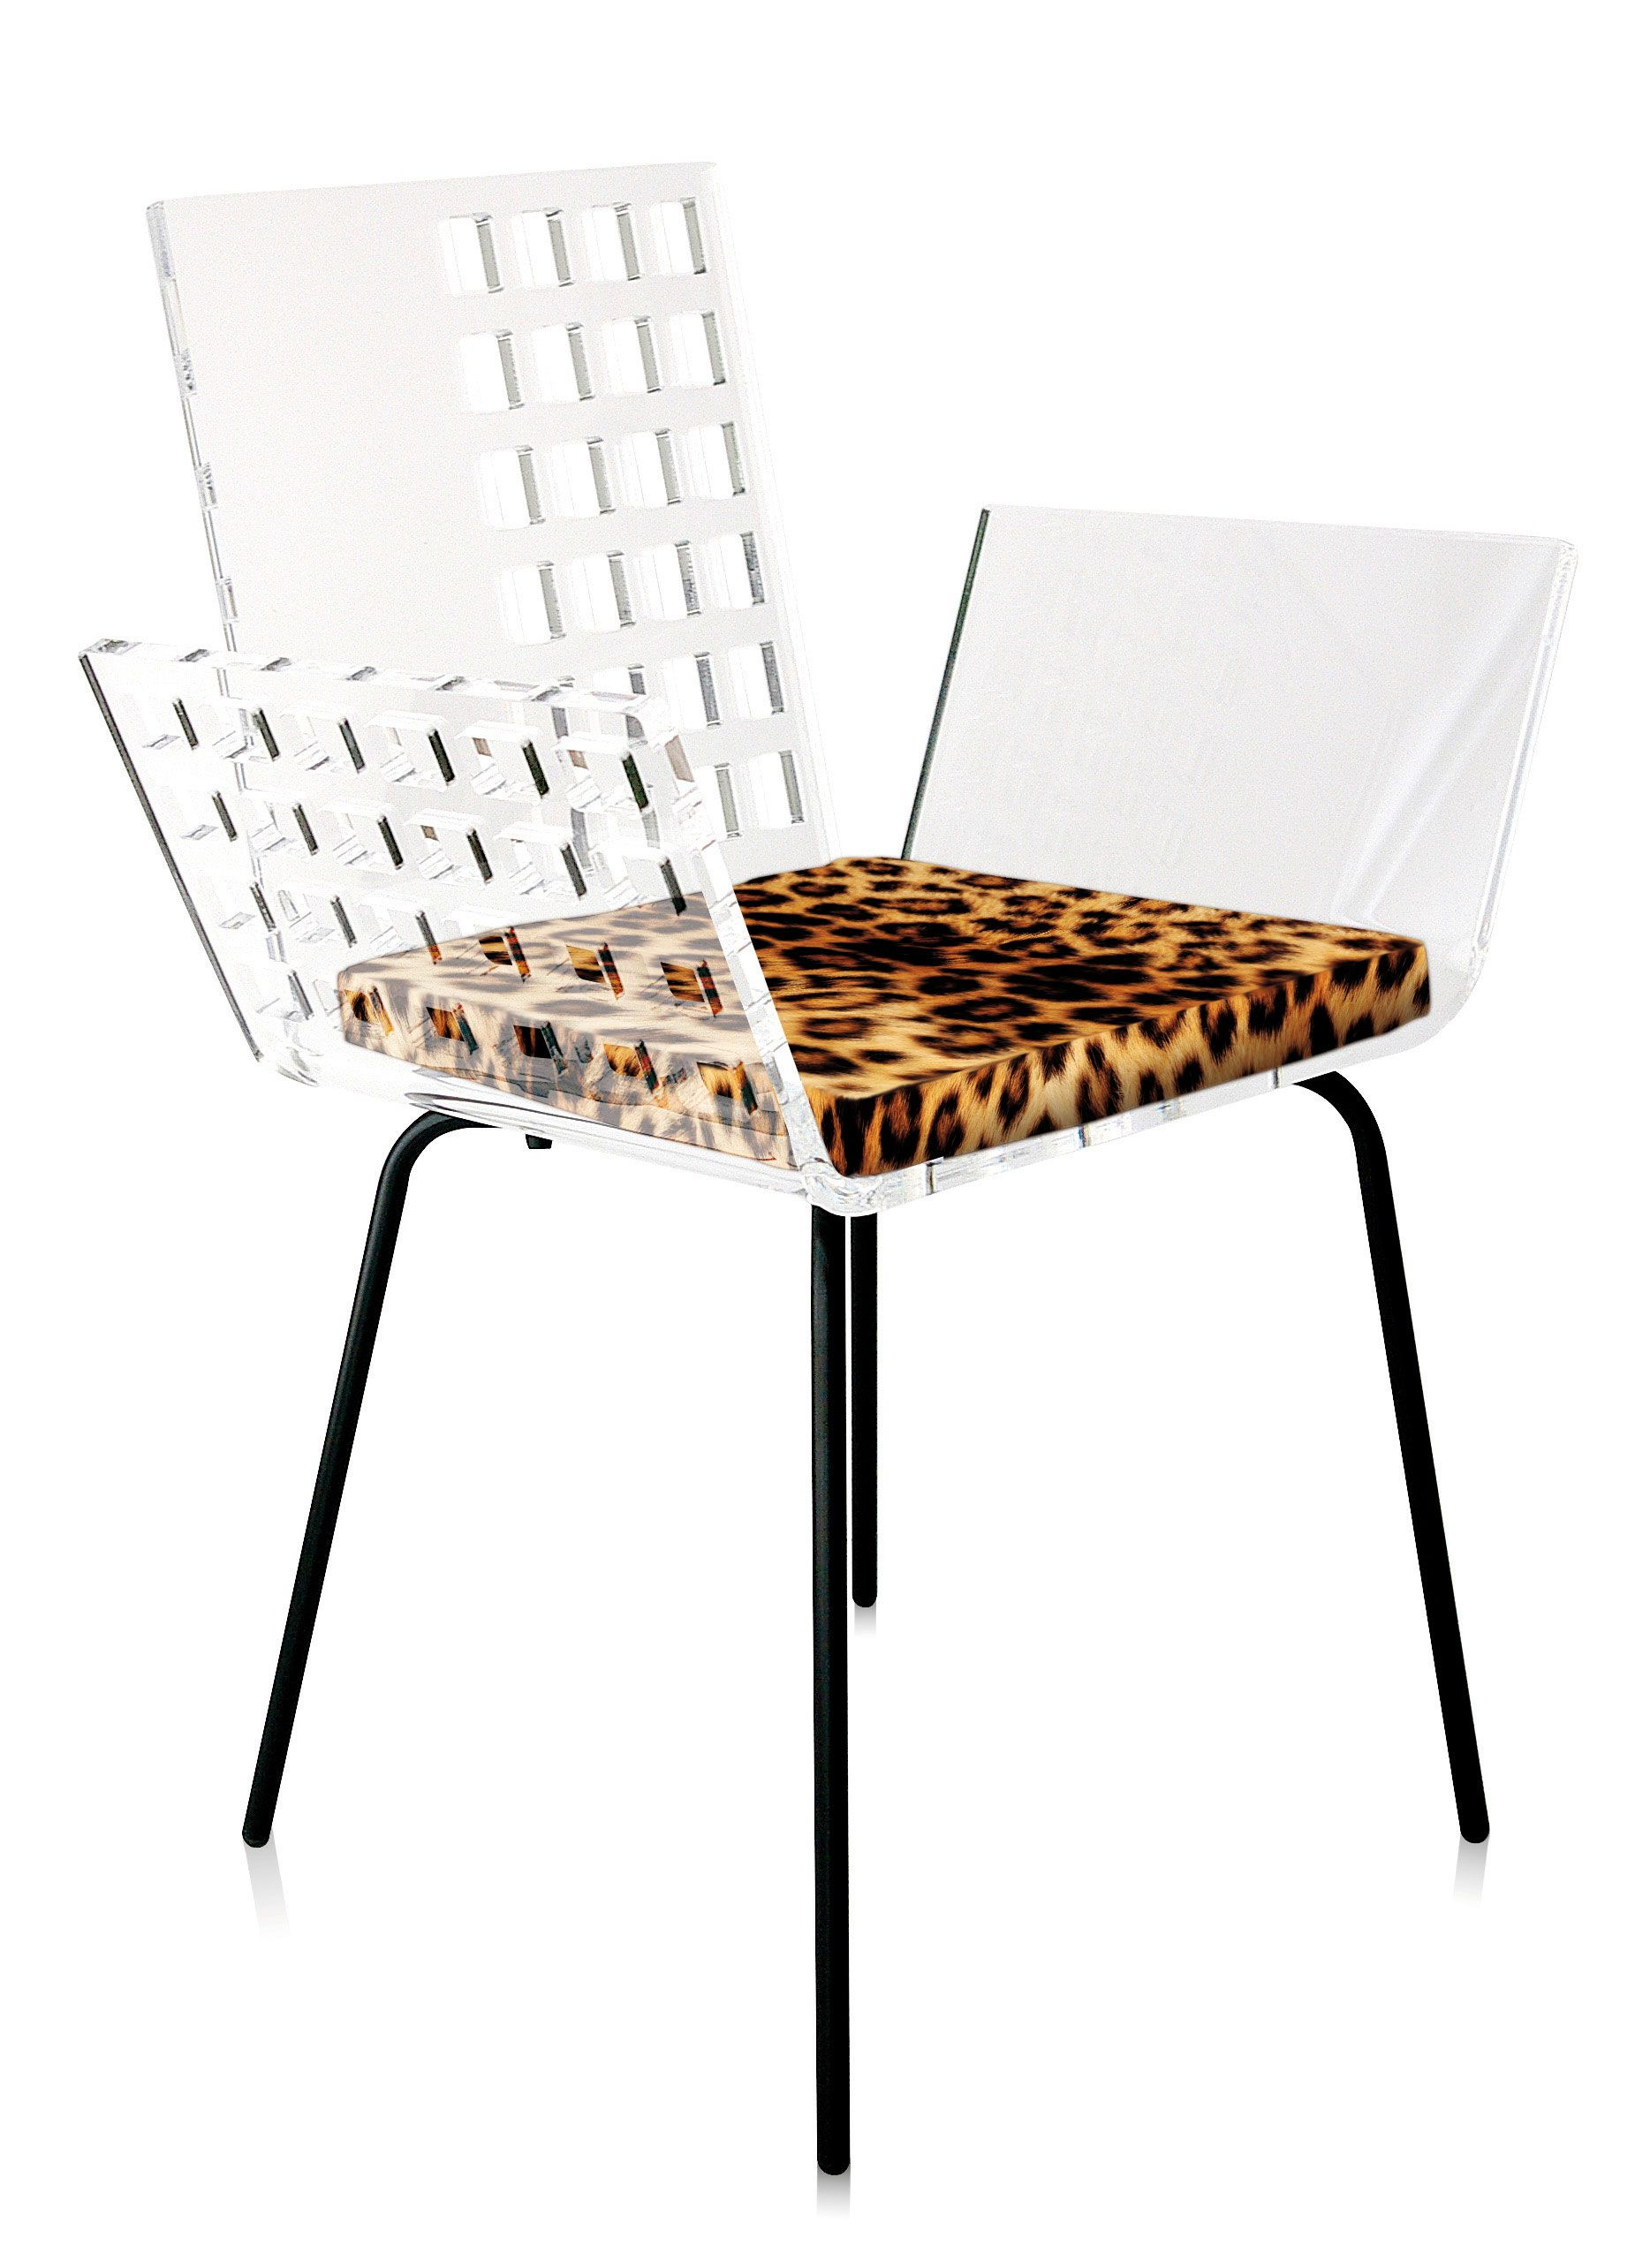 Mobilier Design Mobilier Personnalise Meubles Design Meubles Plexiglas Chaises Design Chaises Acrylic Furniture Acrylic Furniture Design Furniture Design